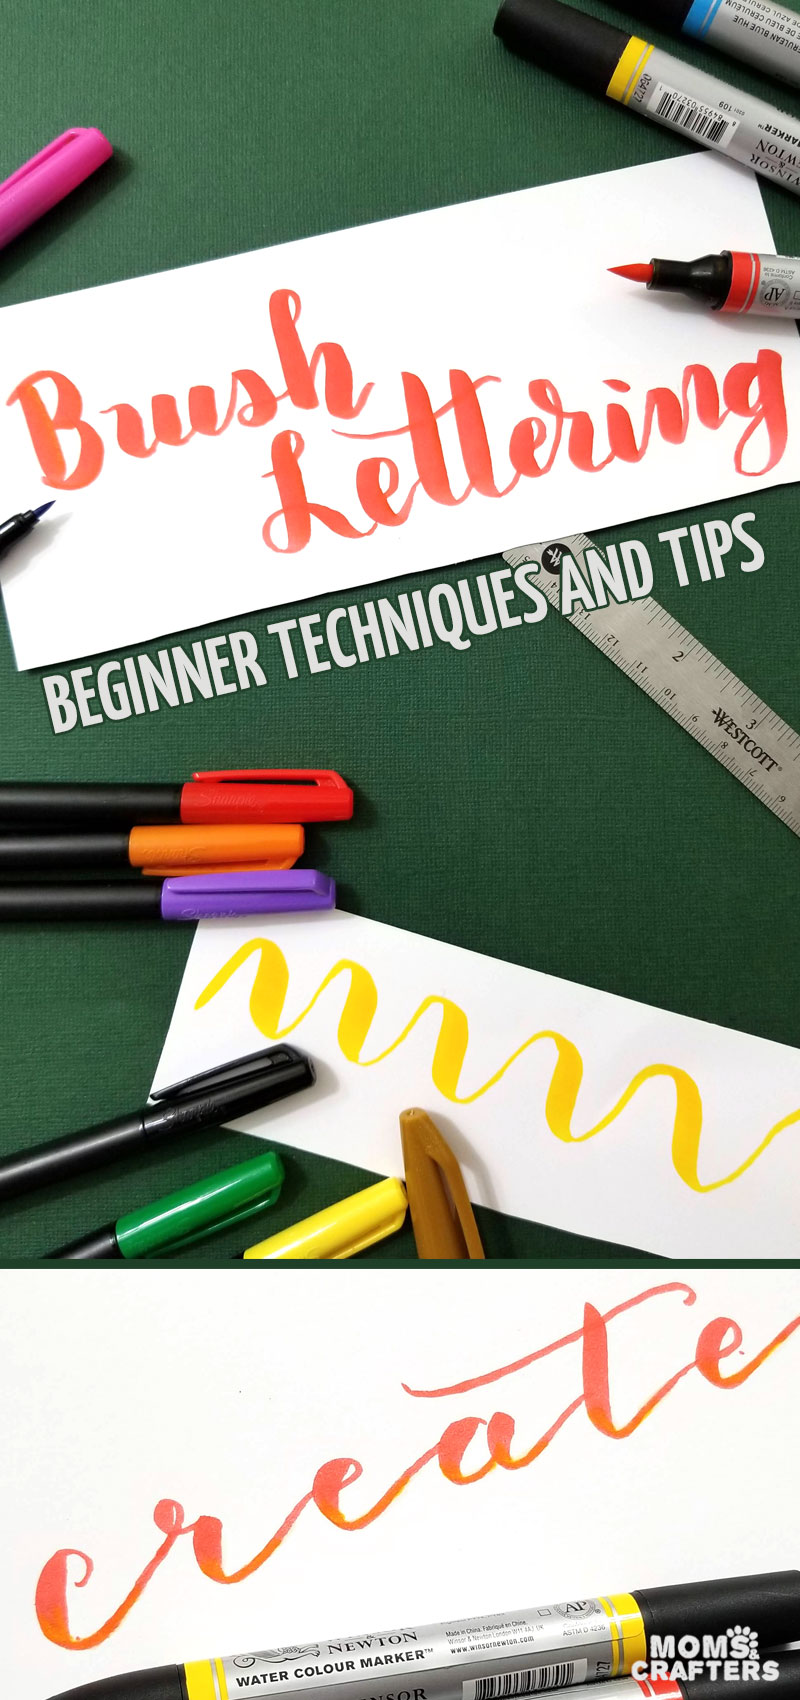 Basic tips and tricks to help you get started with learning brush lettering on your own! These brush calligraphy videos and techniques will help you make beautiful gift tags and cards, scrapbook pages, and bullet journal spreads. #bujo #handlettering #brushlettering